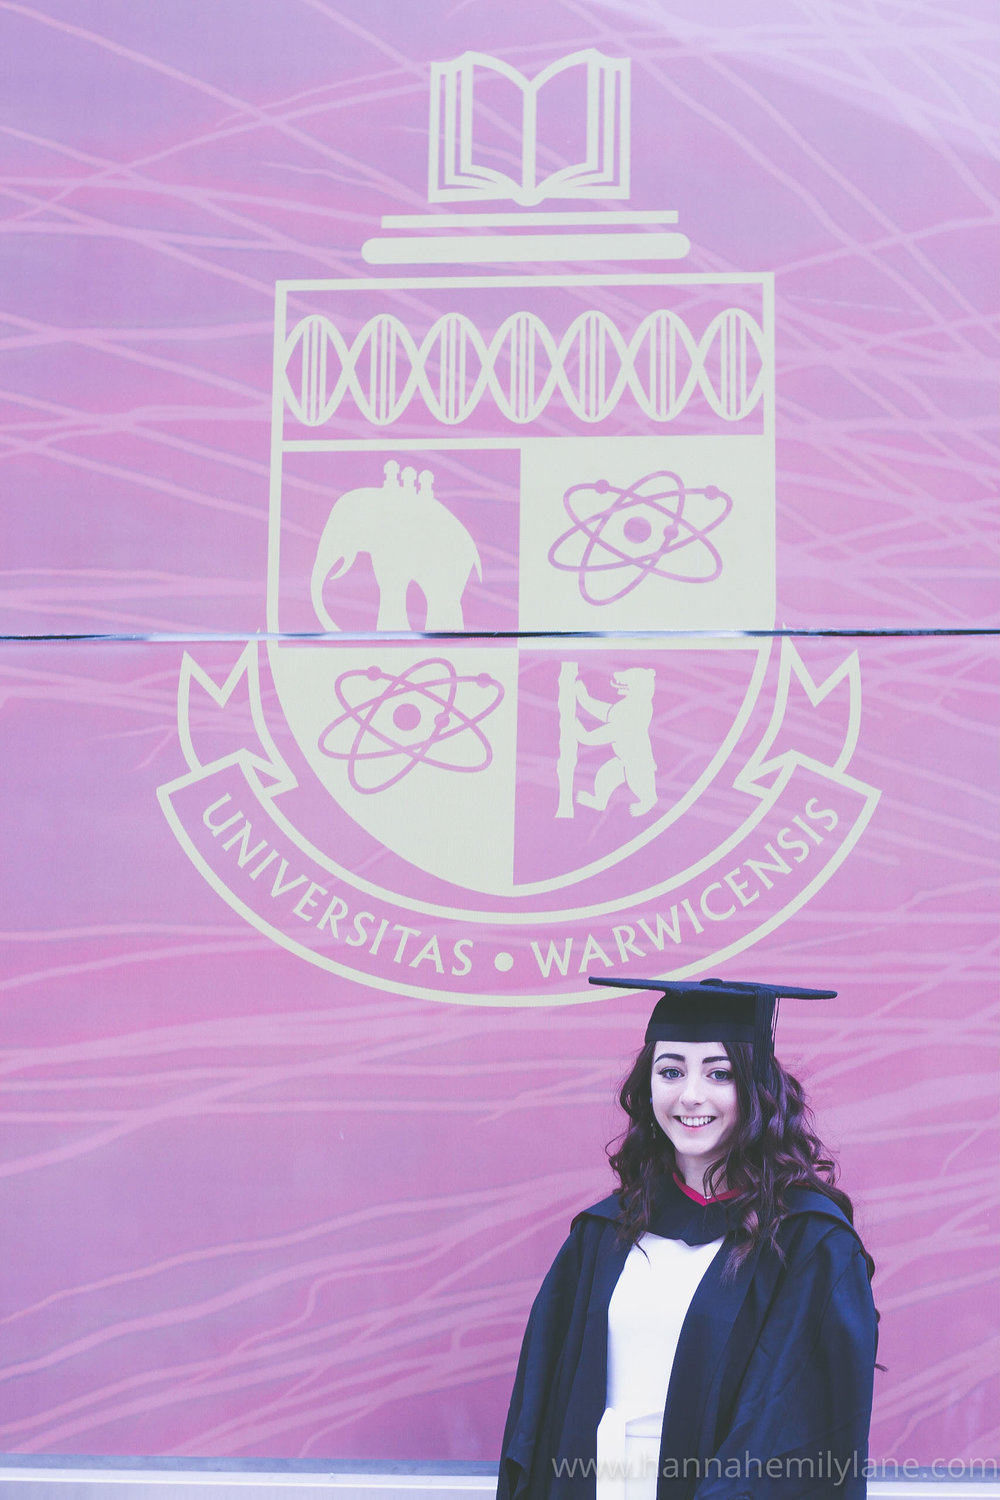 Graduating - 1 year on | www.hannahemilylane.com.jpg